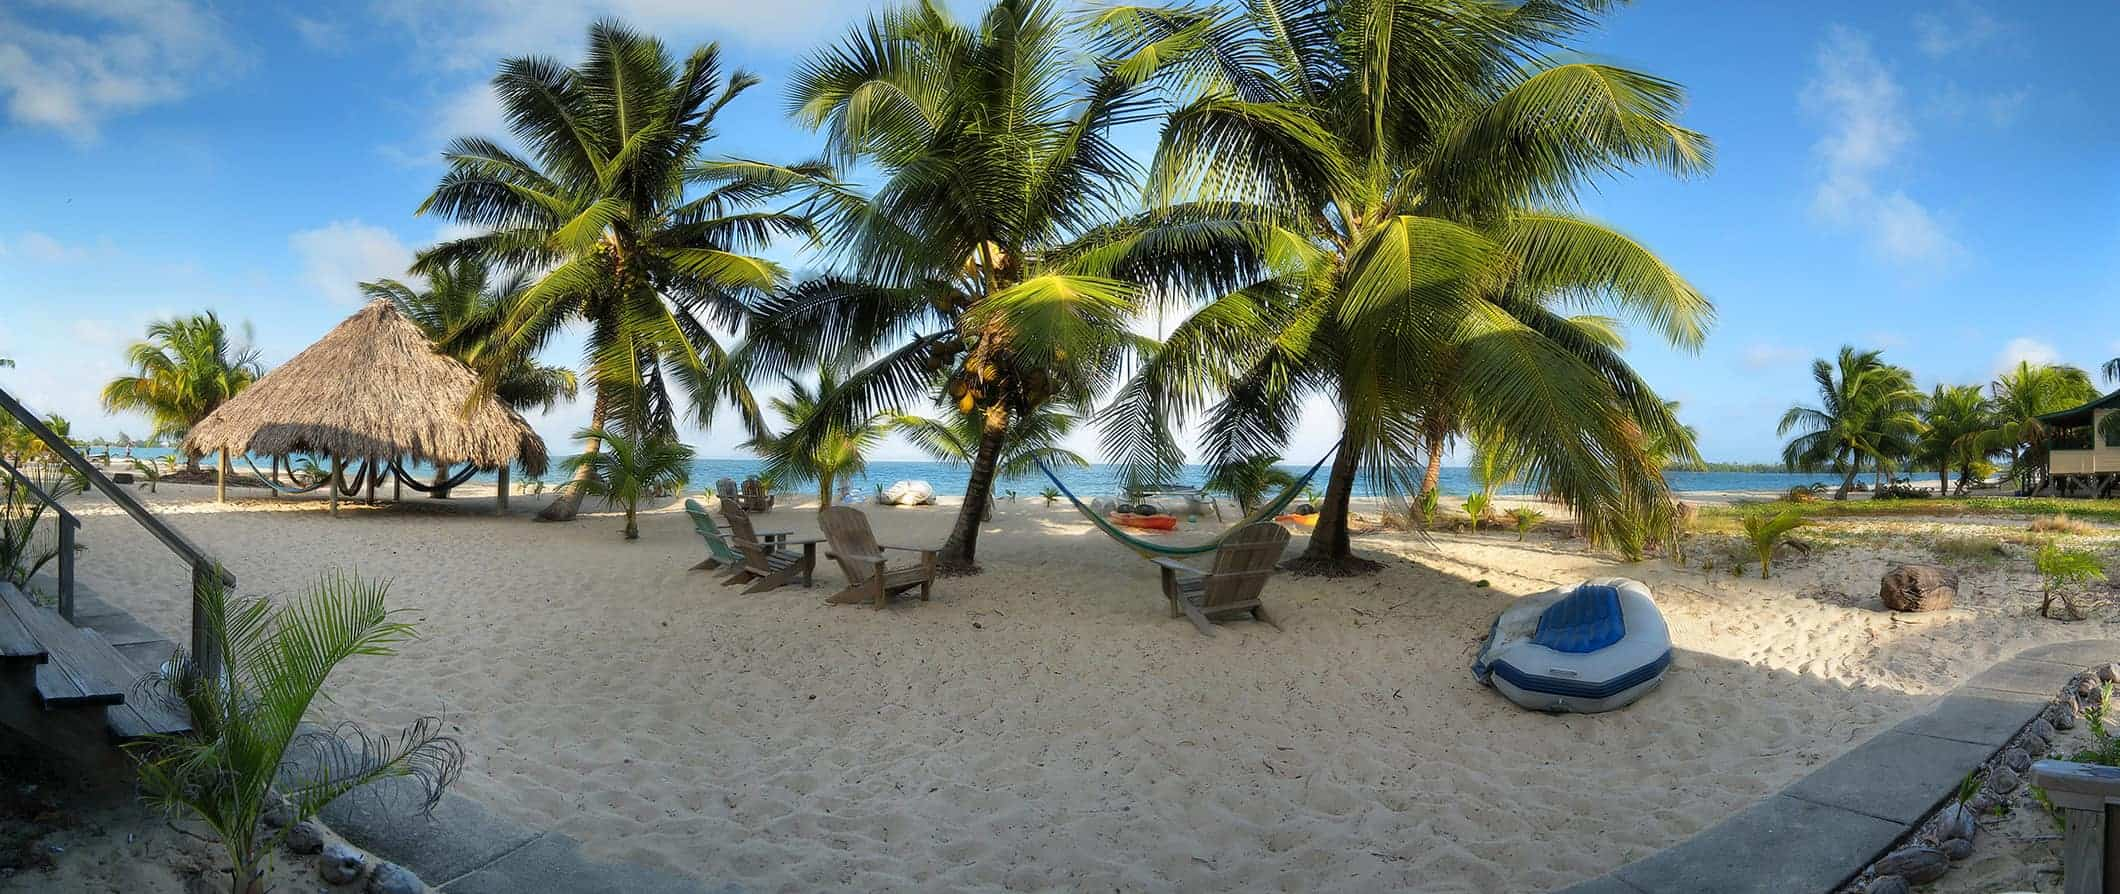 a beach scene in Placencia, Belize